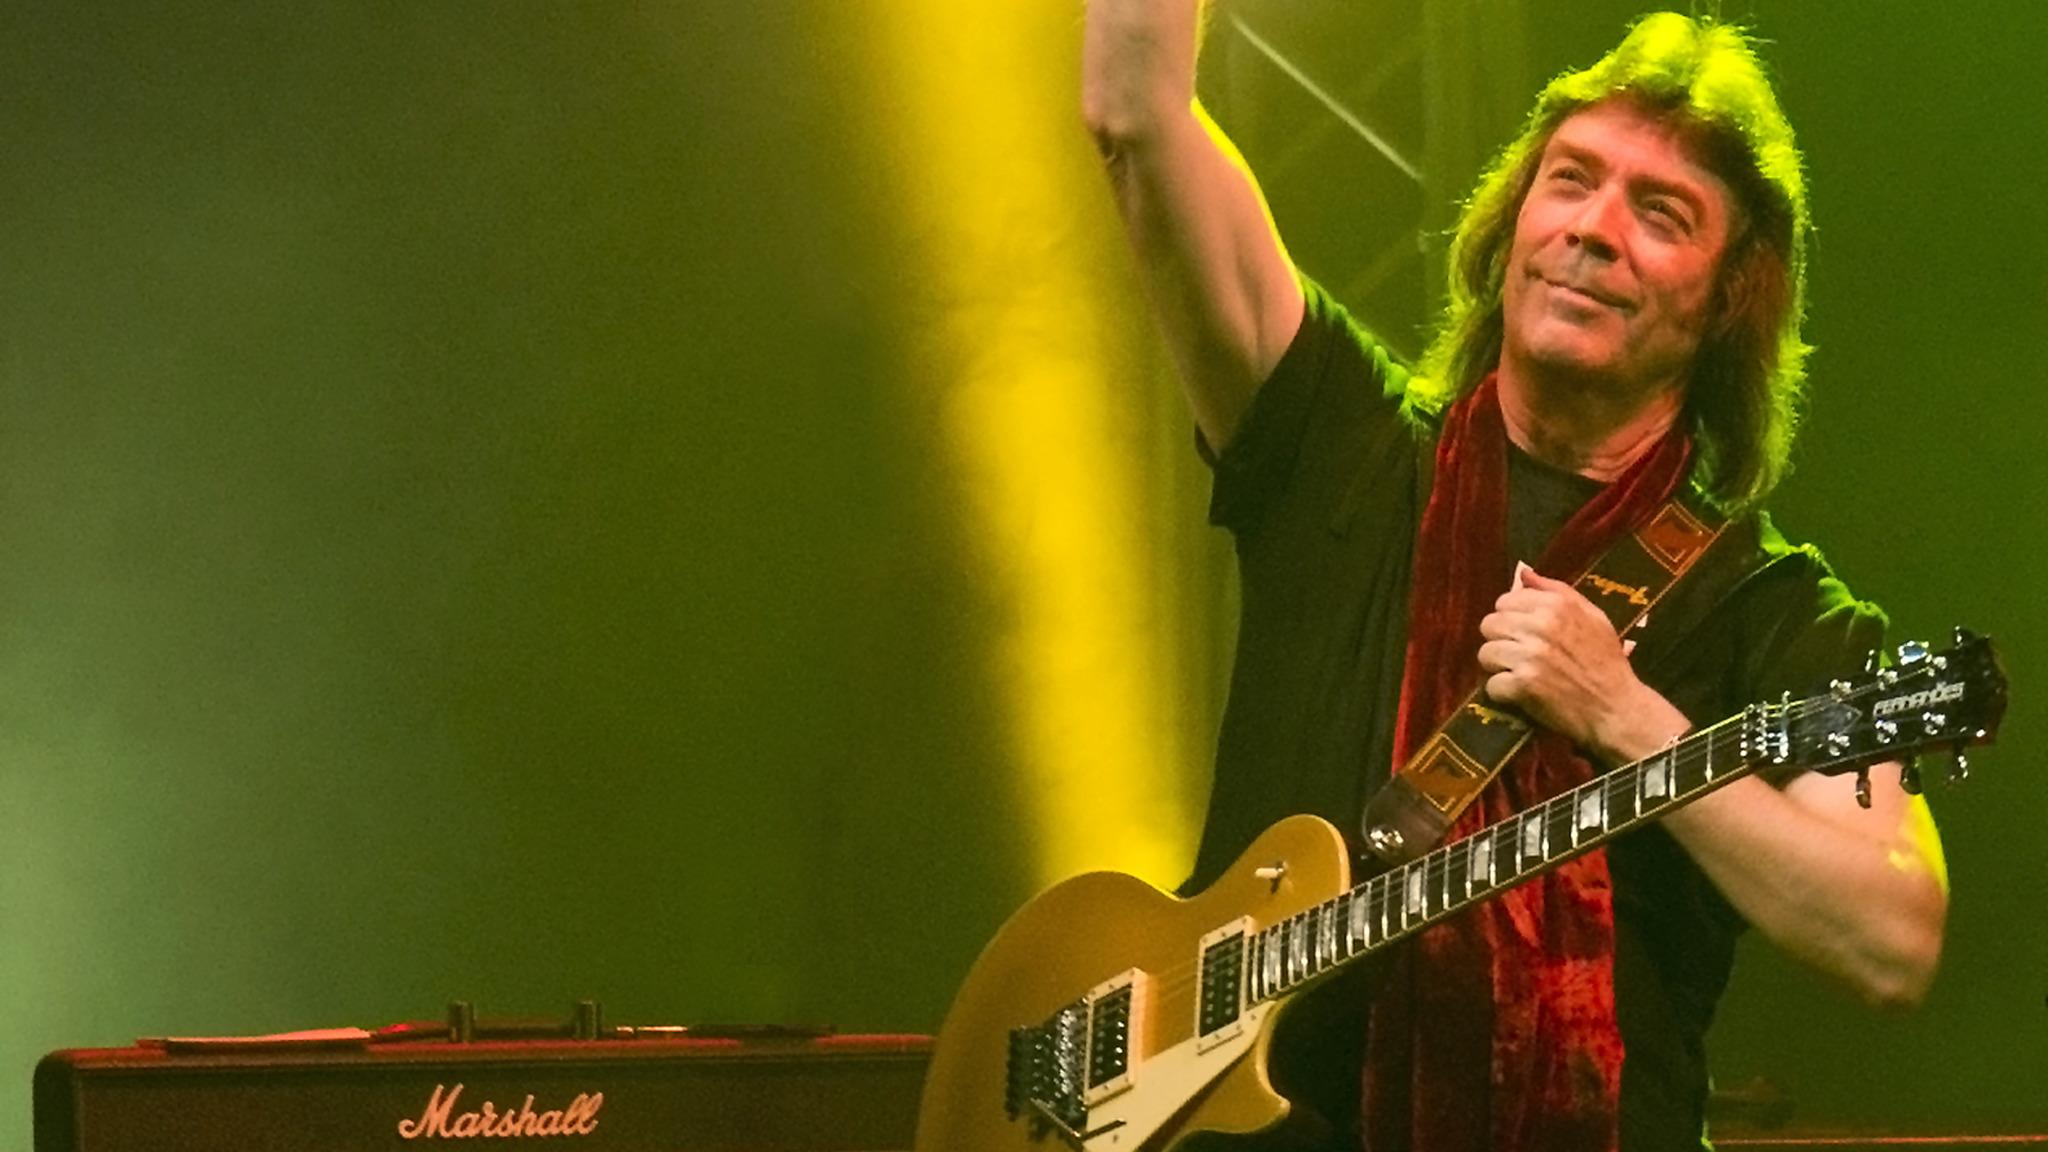 Steve Hackett at Plaza Live - Orlando